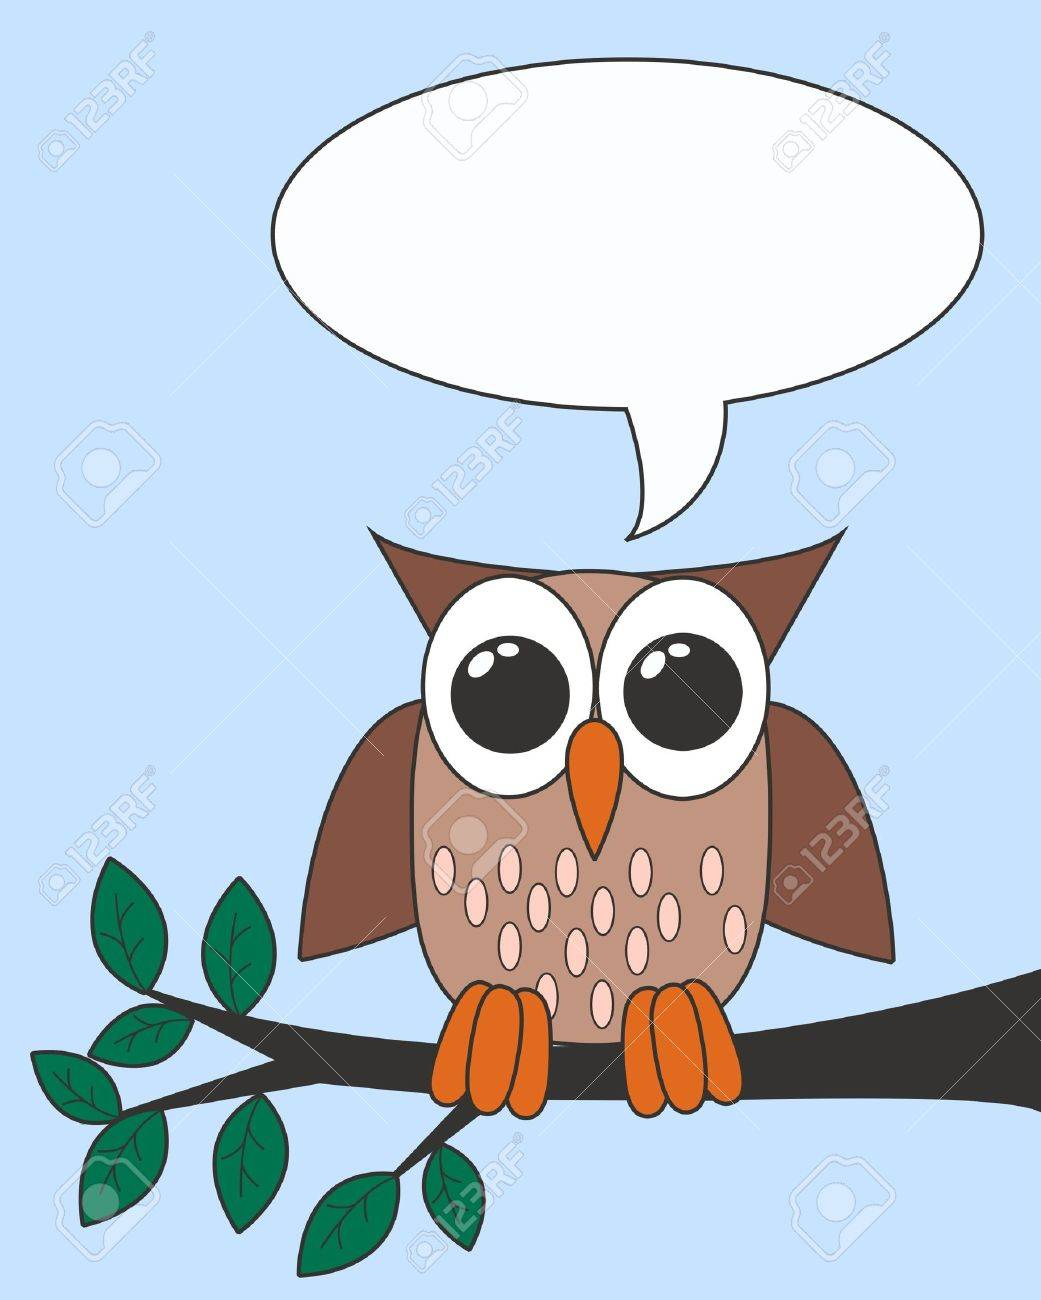 owl with a speech bubble royalty free cliparts vectors and stock rh 123rf com Silhouette Owl Clip Art Owl Drawings